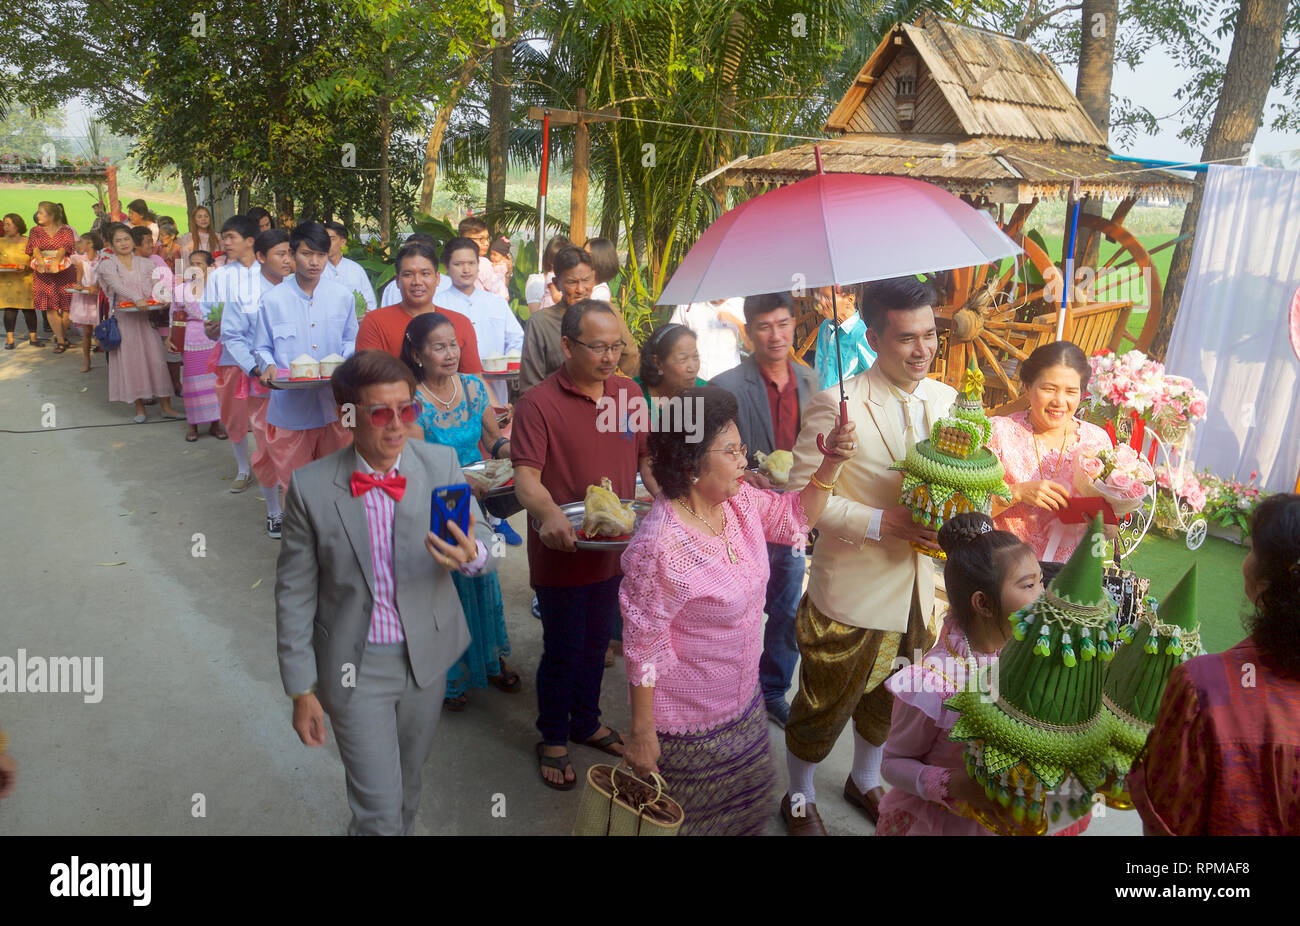 A Thai wedding party with the groom at the front waiting to be aloud in to see his bride. Thailand - Stock Image